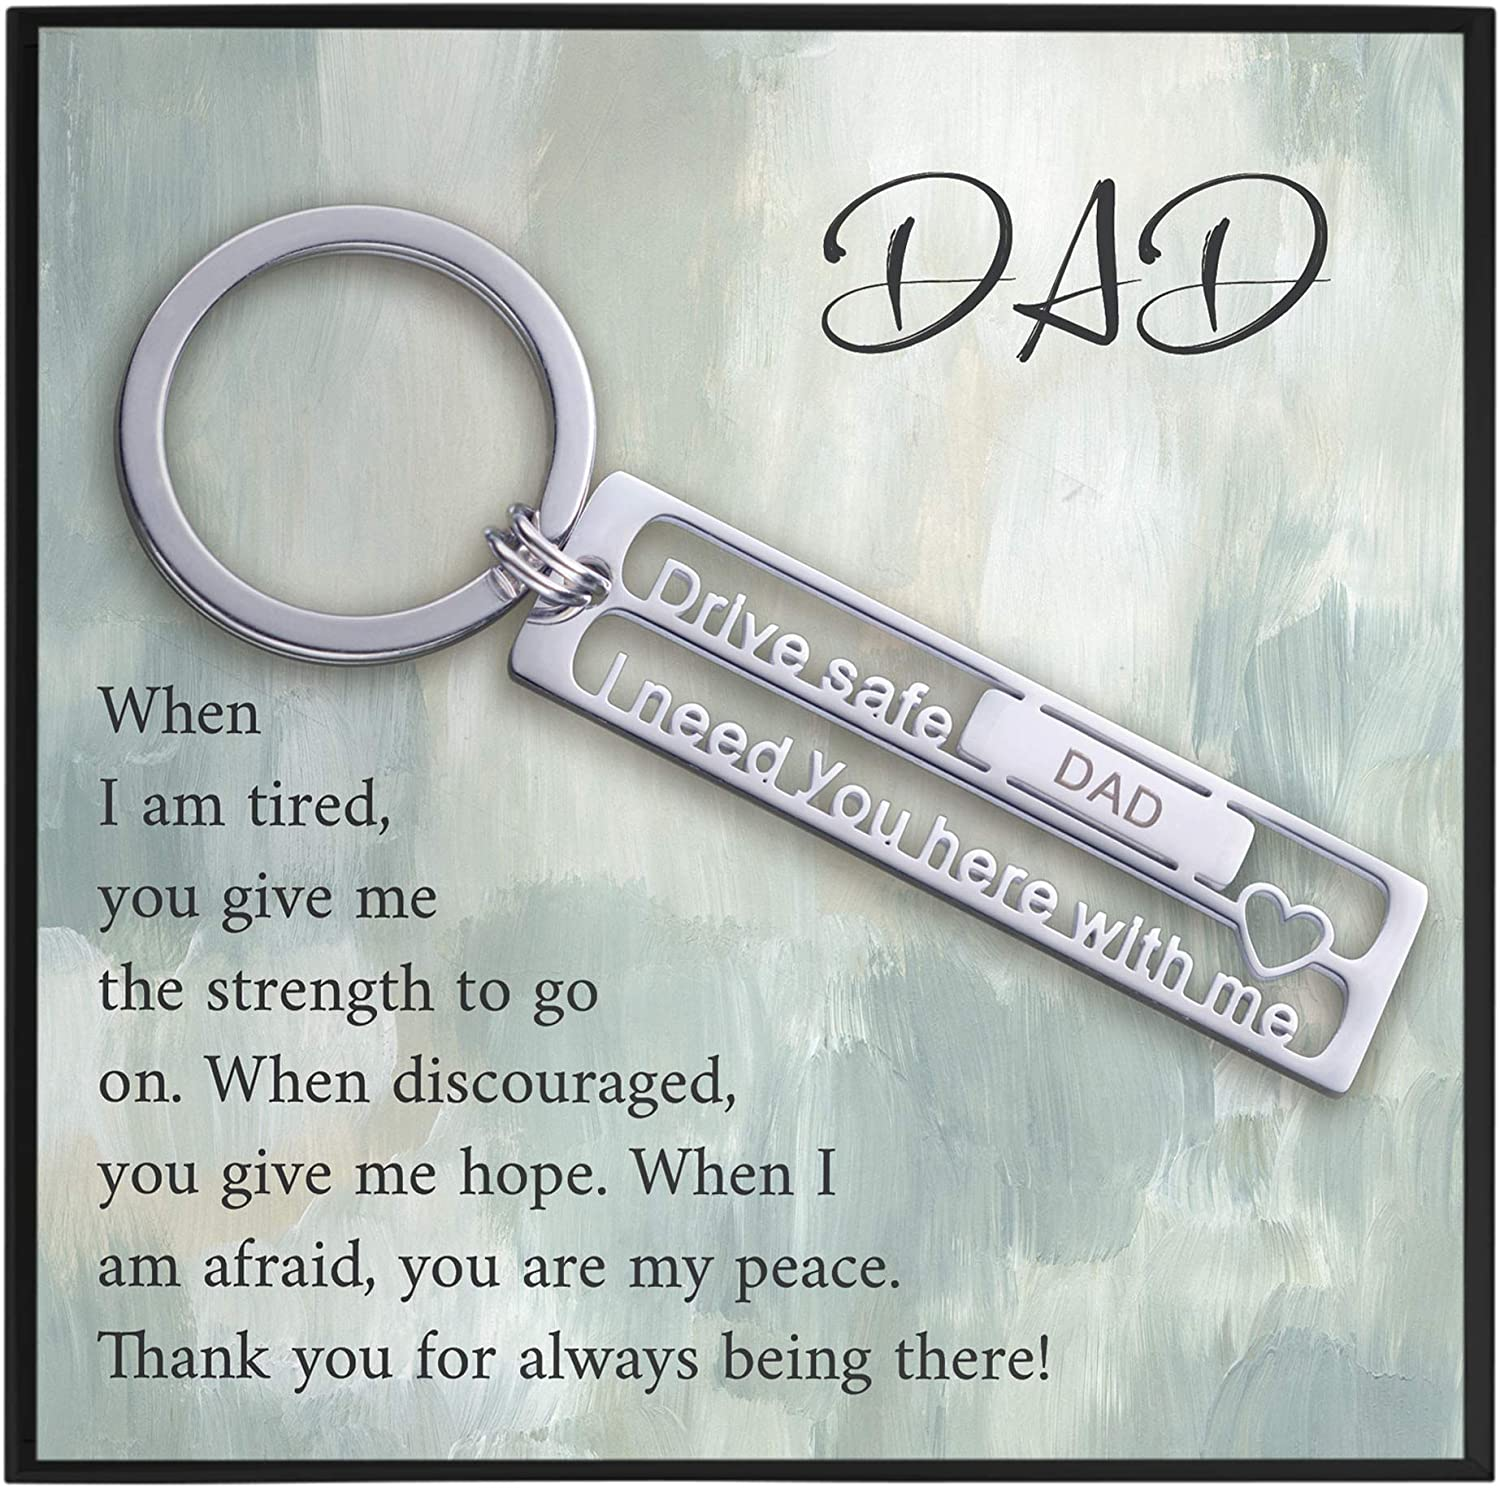 Dad gifts Gift For Dad From Son Gift From Daughter Gift For Dad From Daughter To Dad From Daughter Gifts For Dad